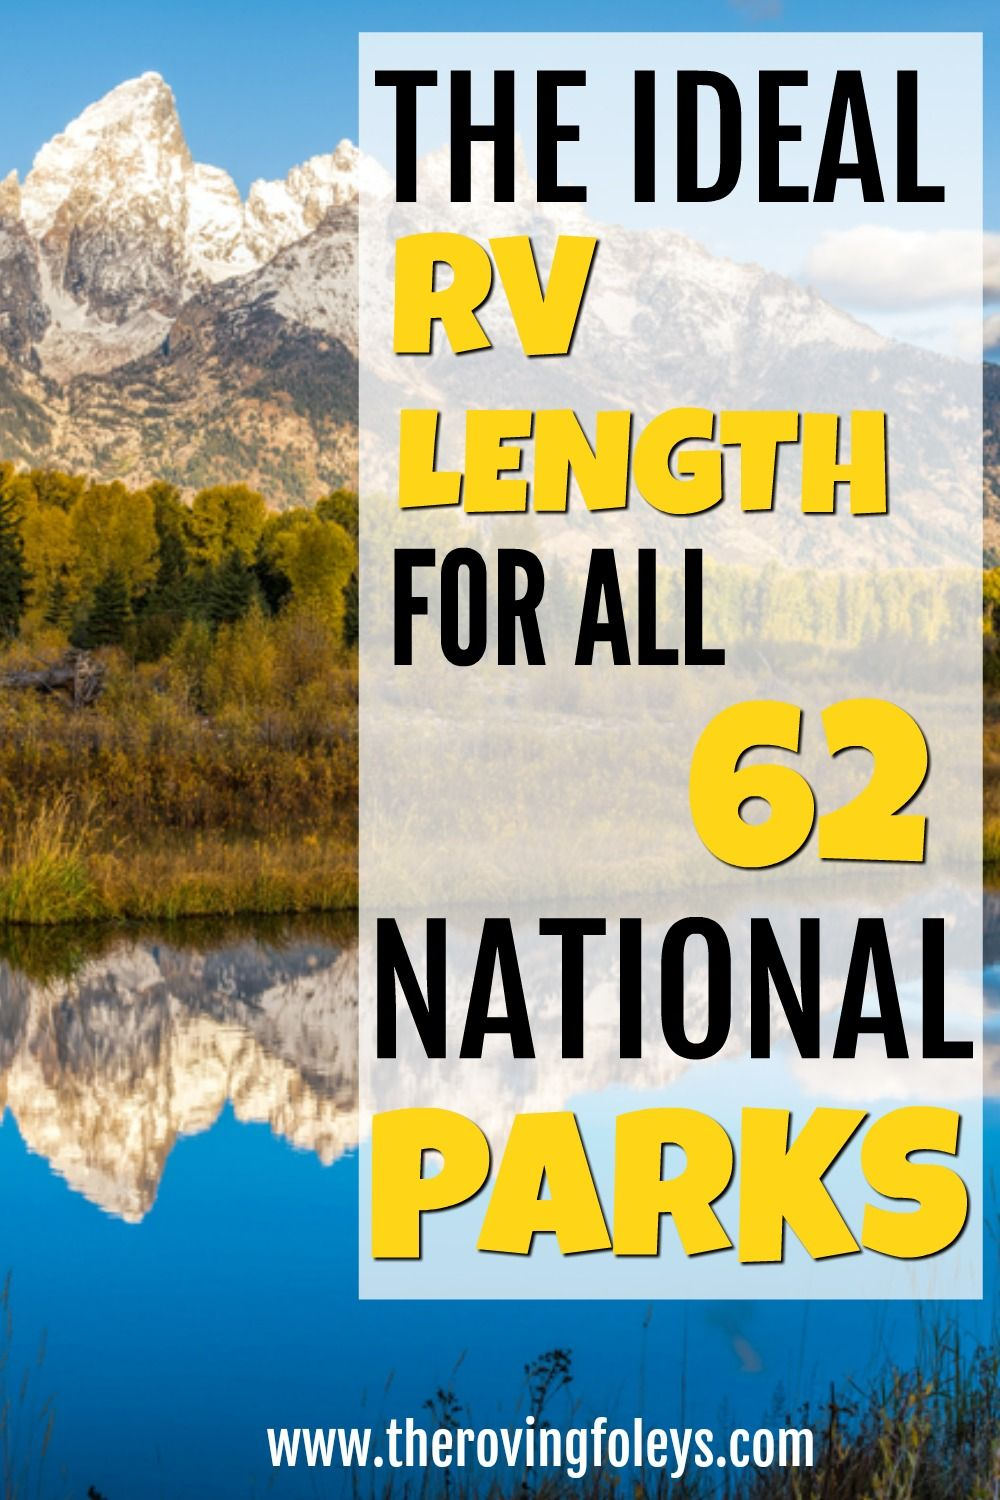 2020 Guide National Parks Rv Length Every Park The Roving Foley S In 2020 National Parks Rv Road Trip Rv Road Trip Planner